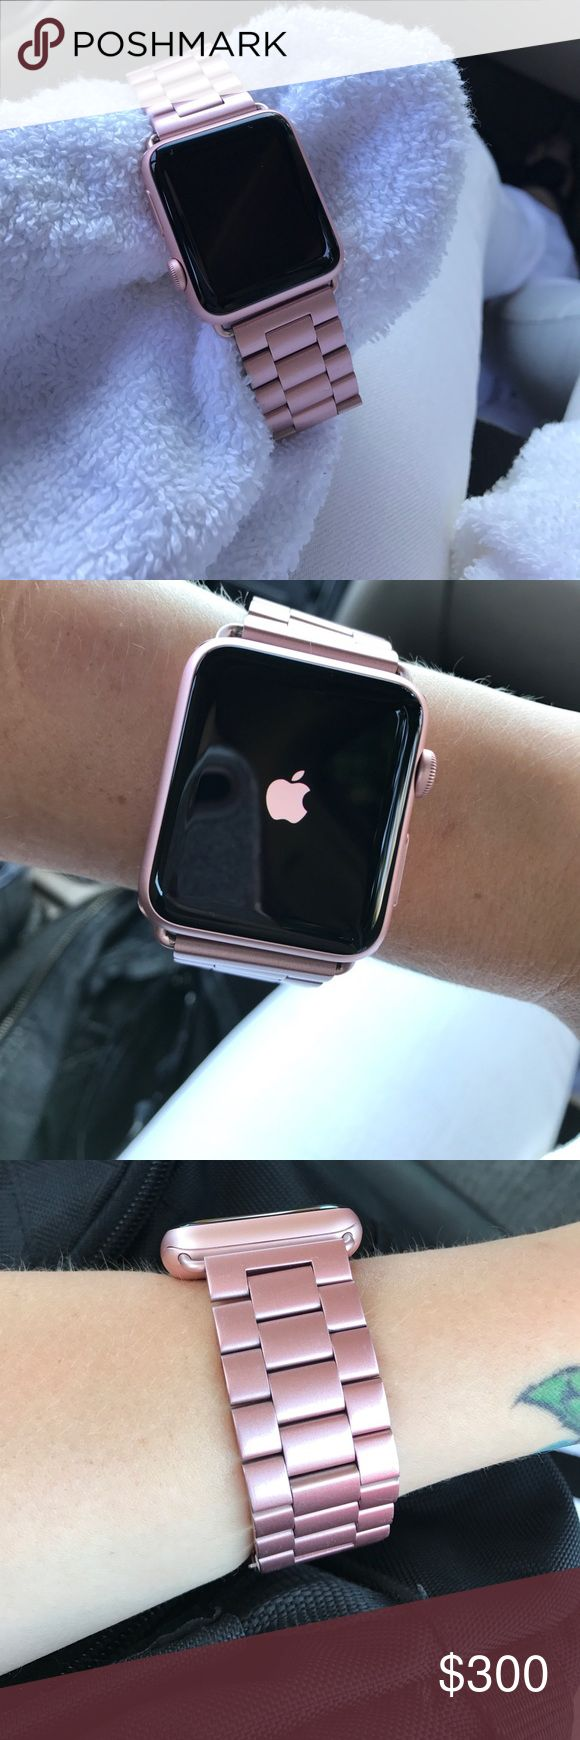 Rose Gold Apple Watch Series 2 42mm 42mm Series 2 Rose Gold Apple Watch with stainless steal wrist band. All rose gold. Band has minor scratches shown in last picture. Original Charger included.   (Extra accessories for an Additional price will be posted later) Apple Accessories Watches